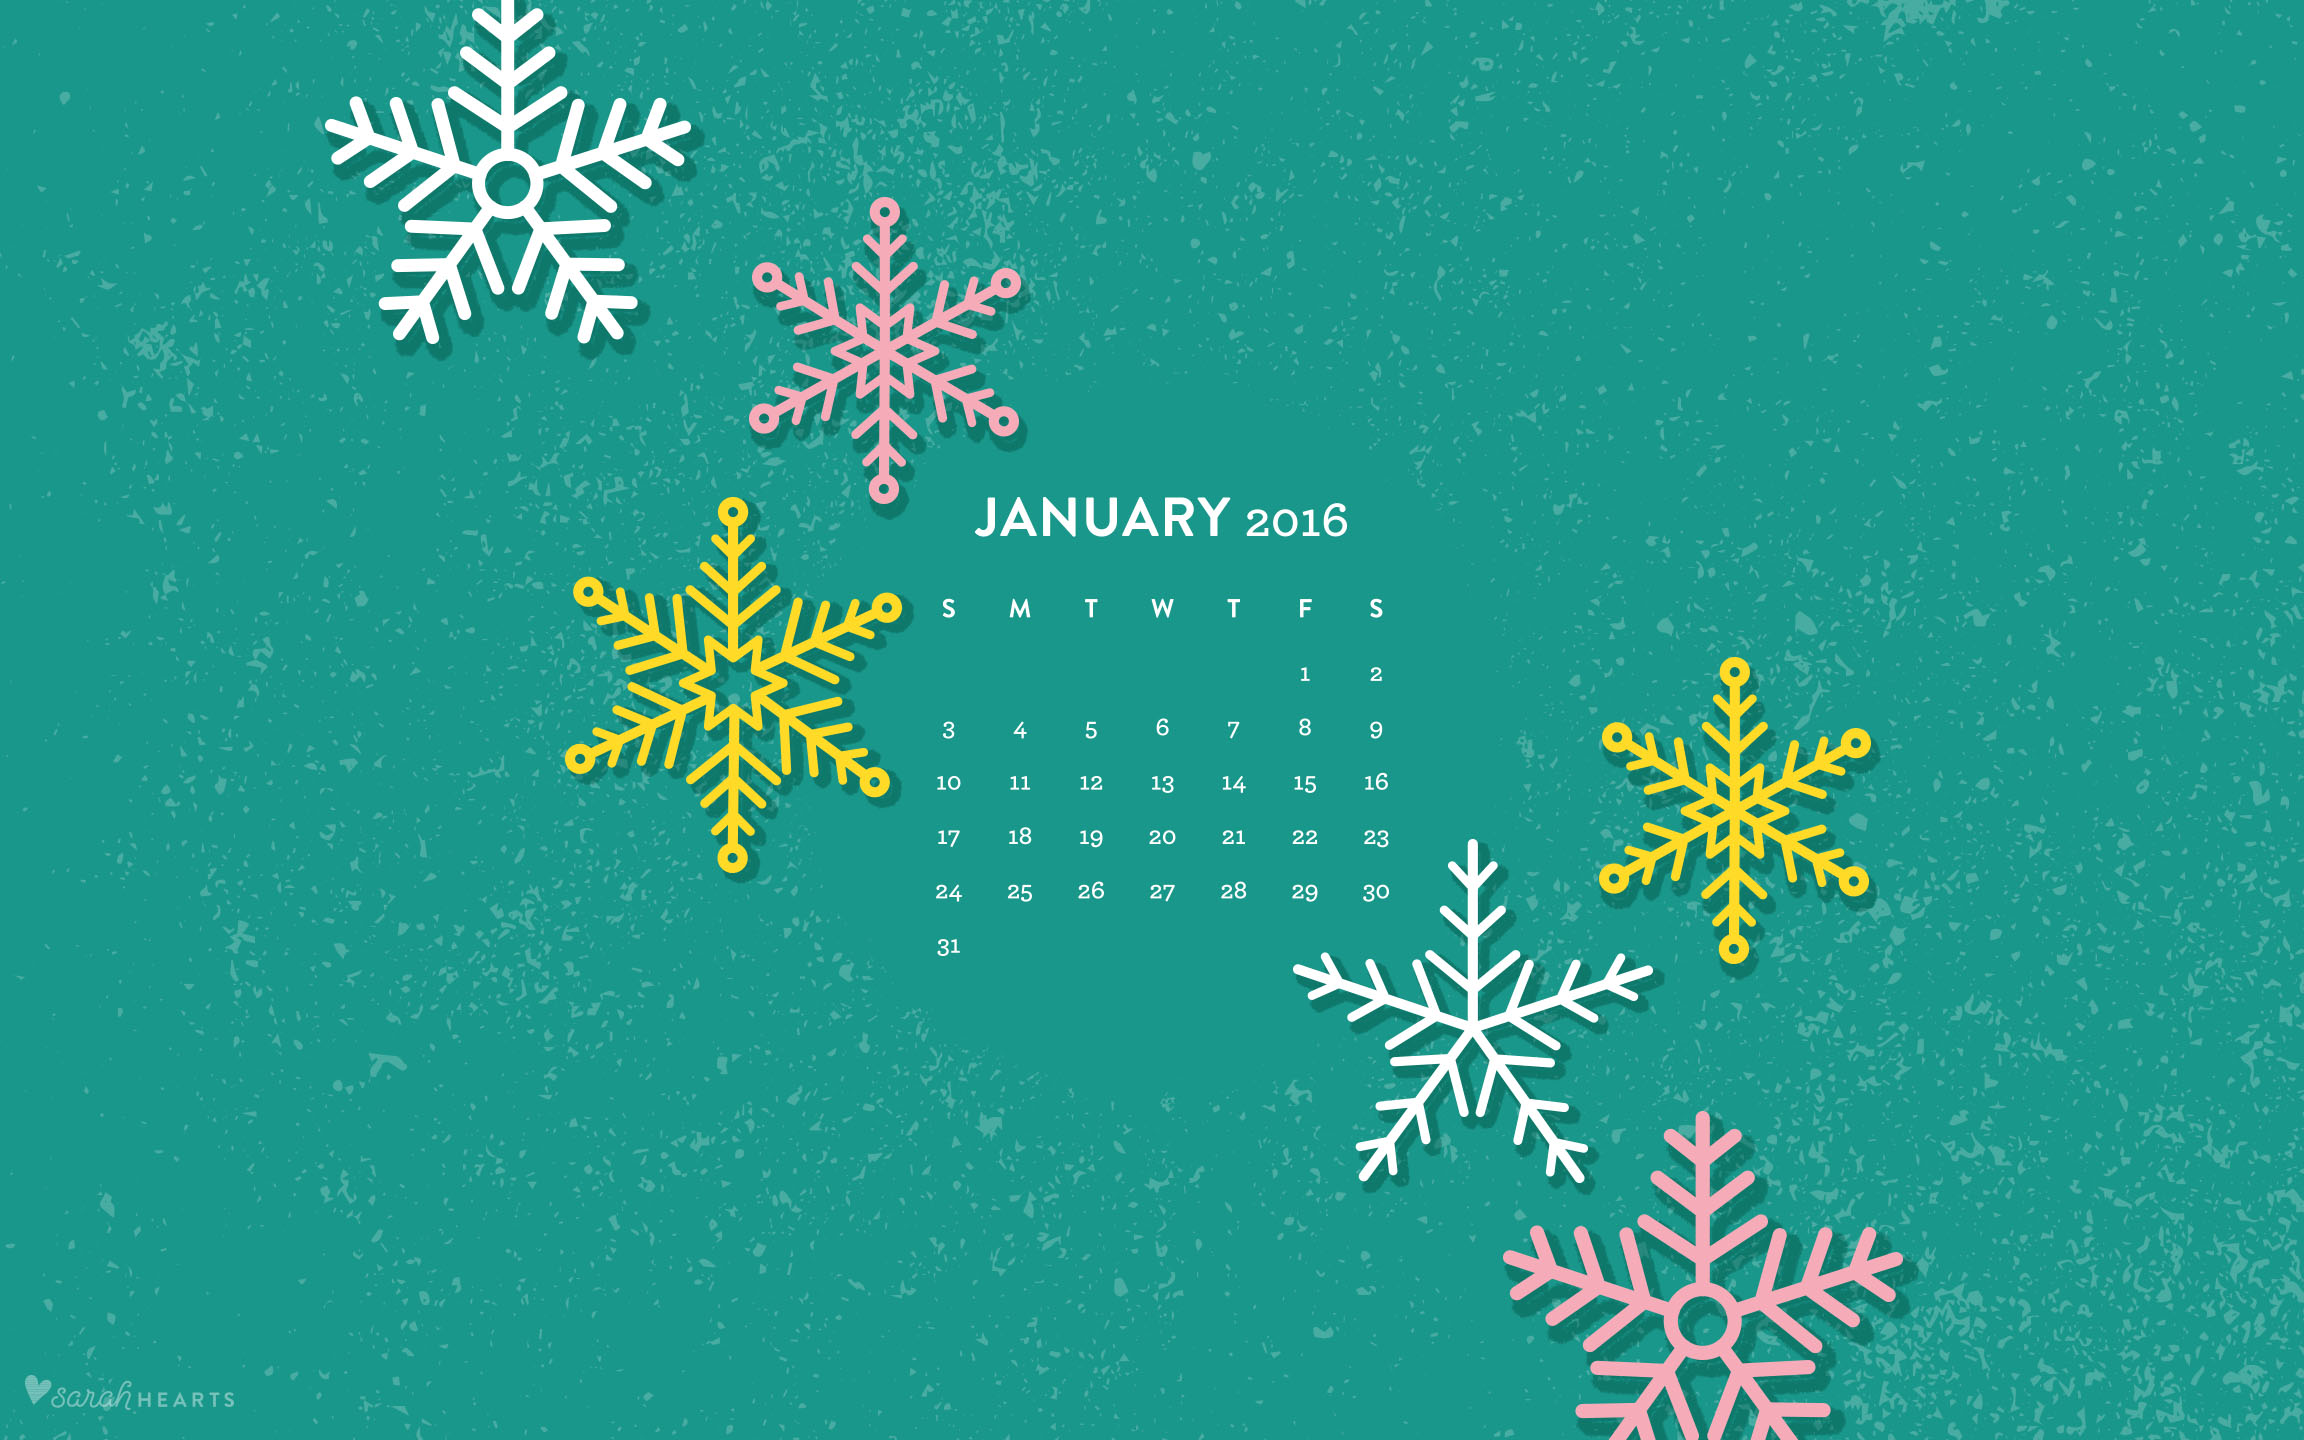 Cute January Calendar Wallpaper : January calendar wallpaper sarah hearts